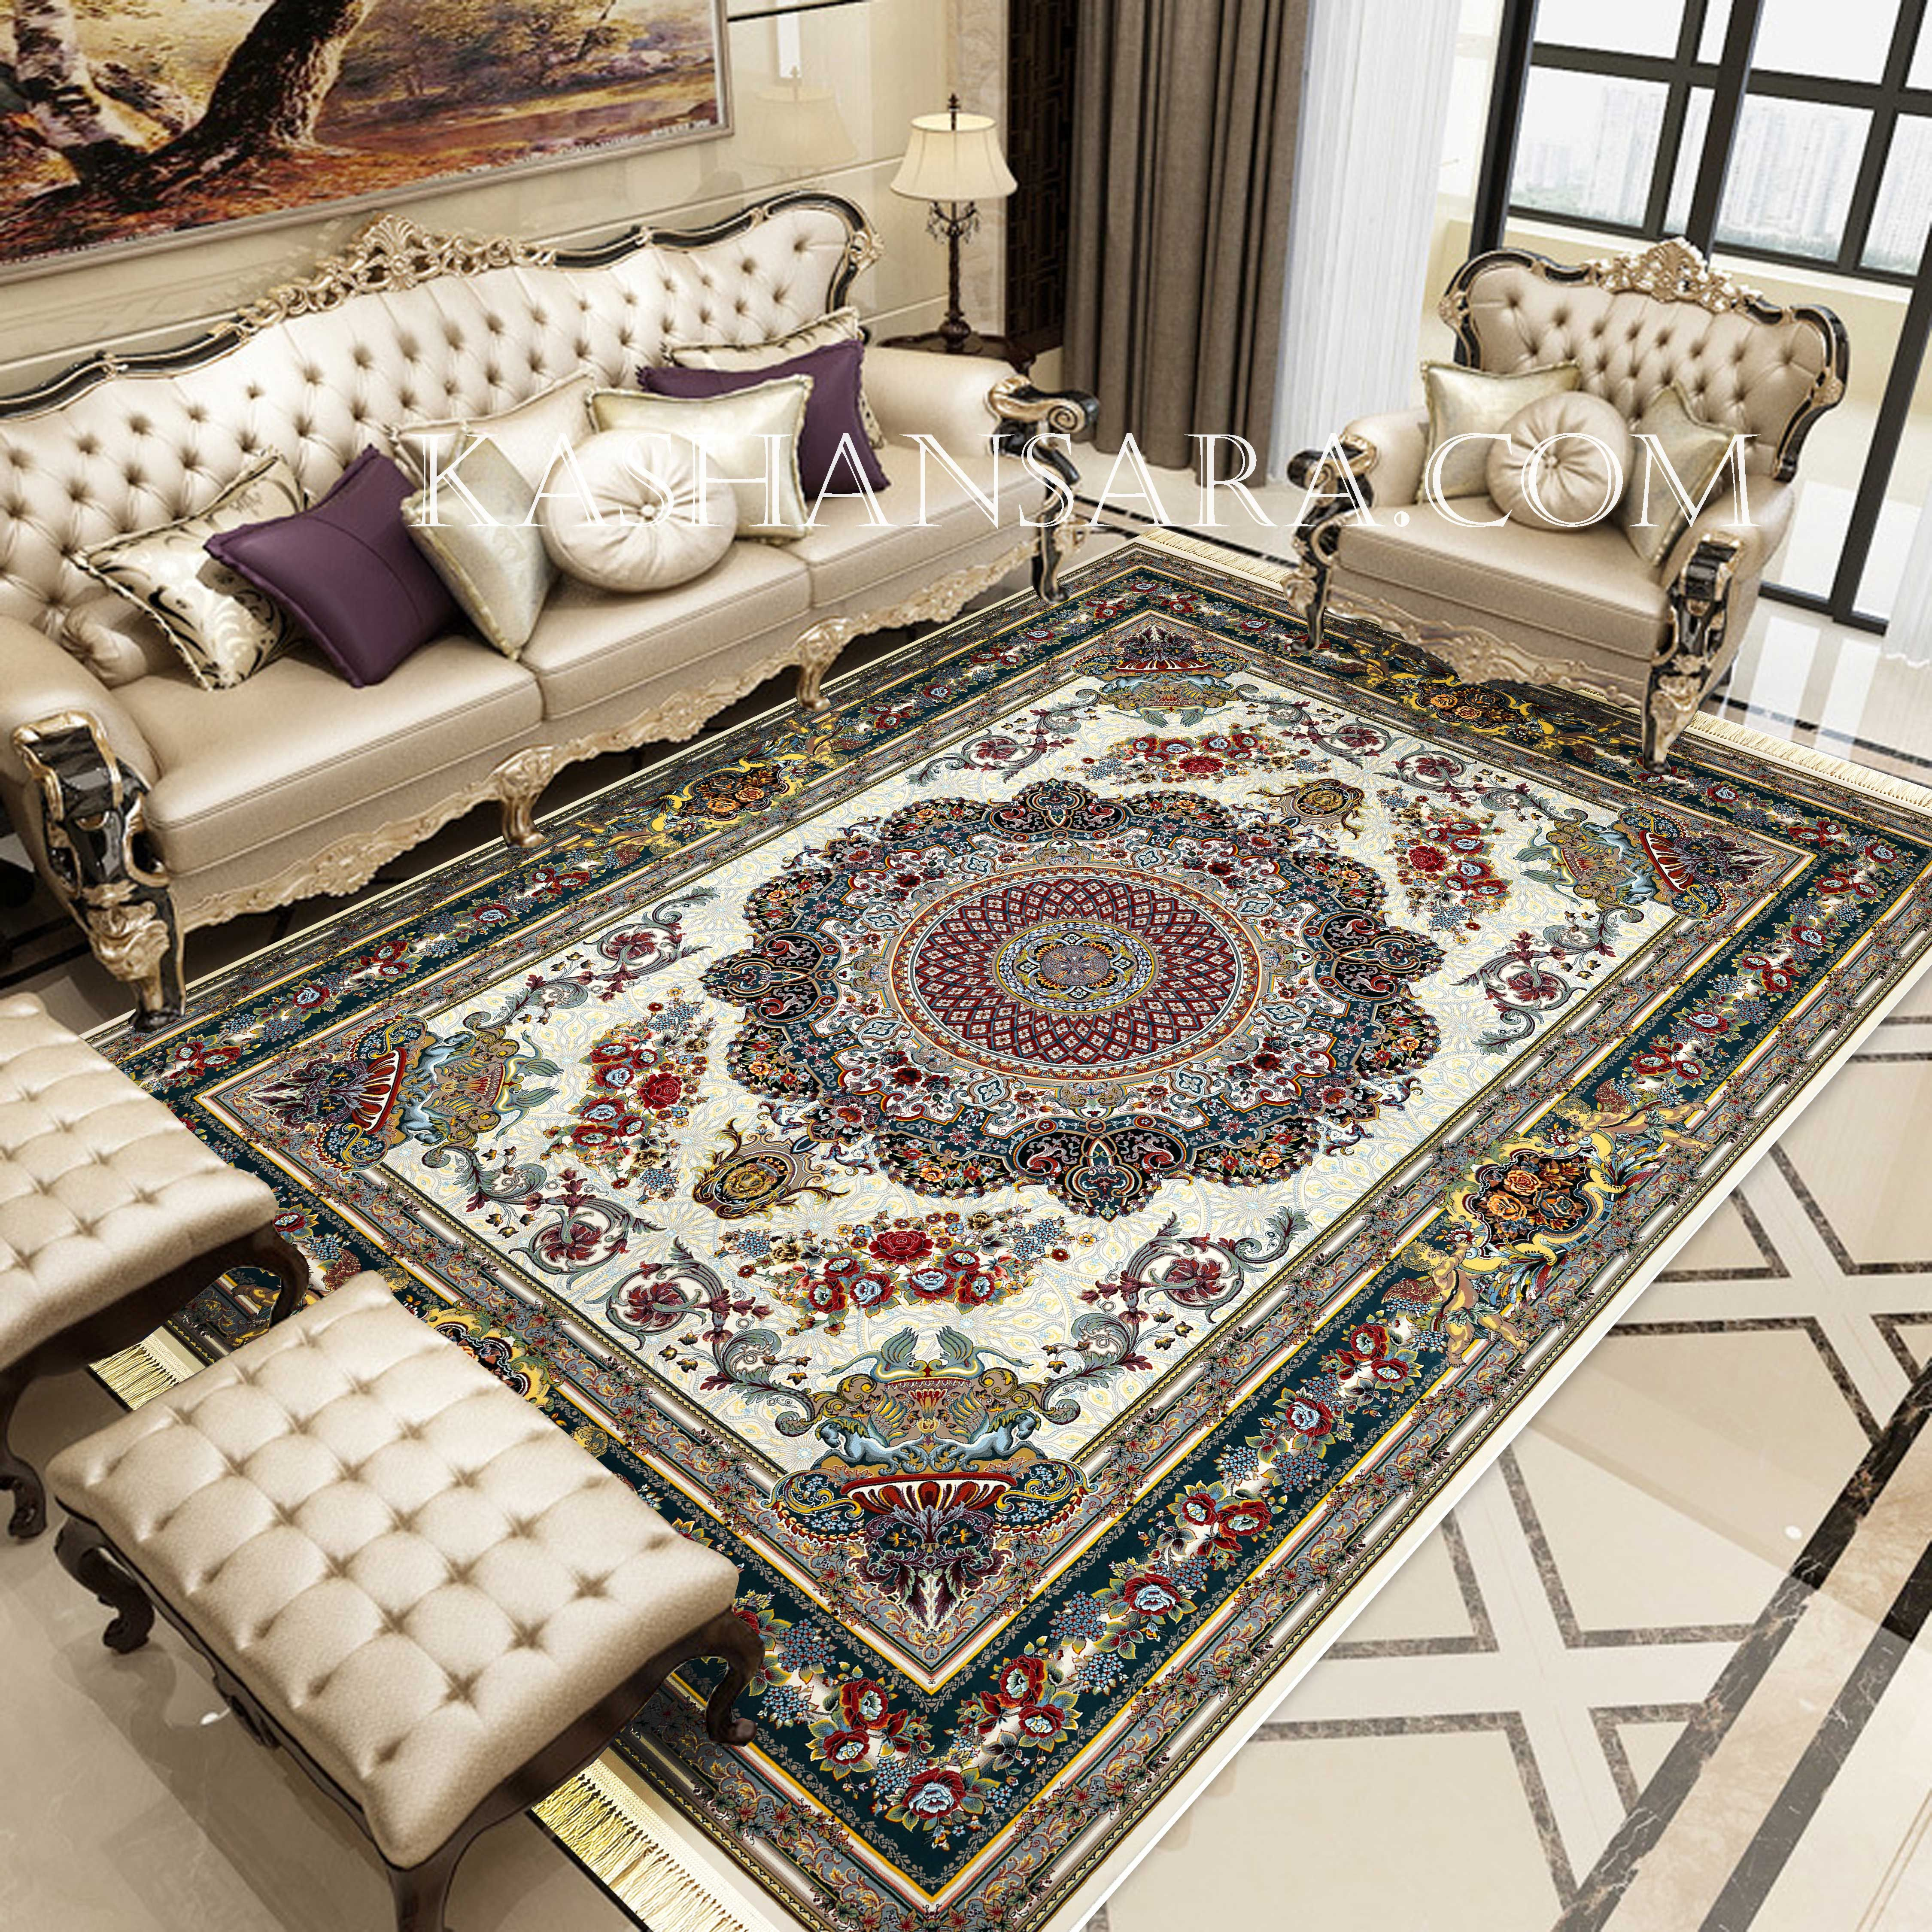 فرشته 1000 شانه کرم Living Room Carpet White Furniture Living Room Area Rug Decor